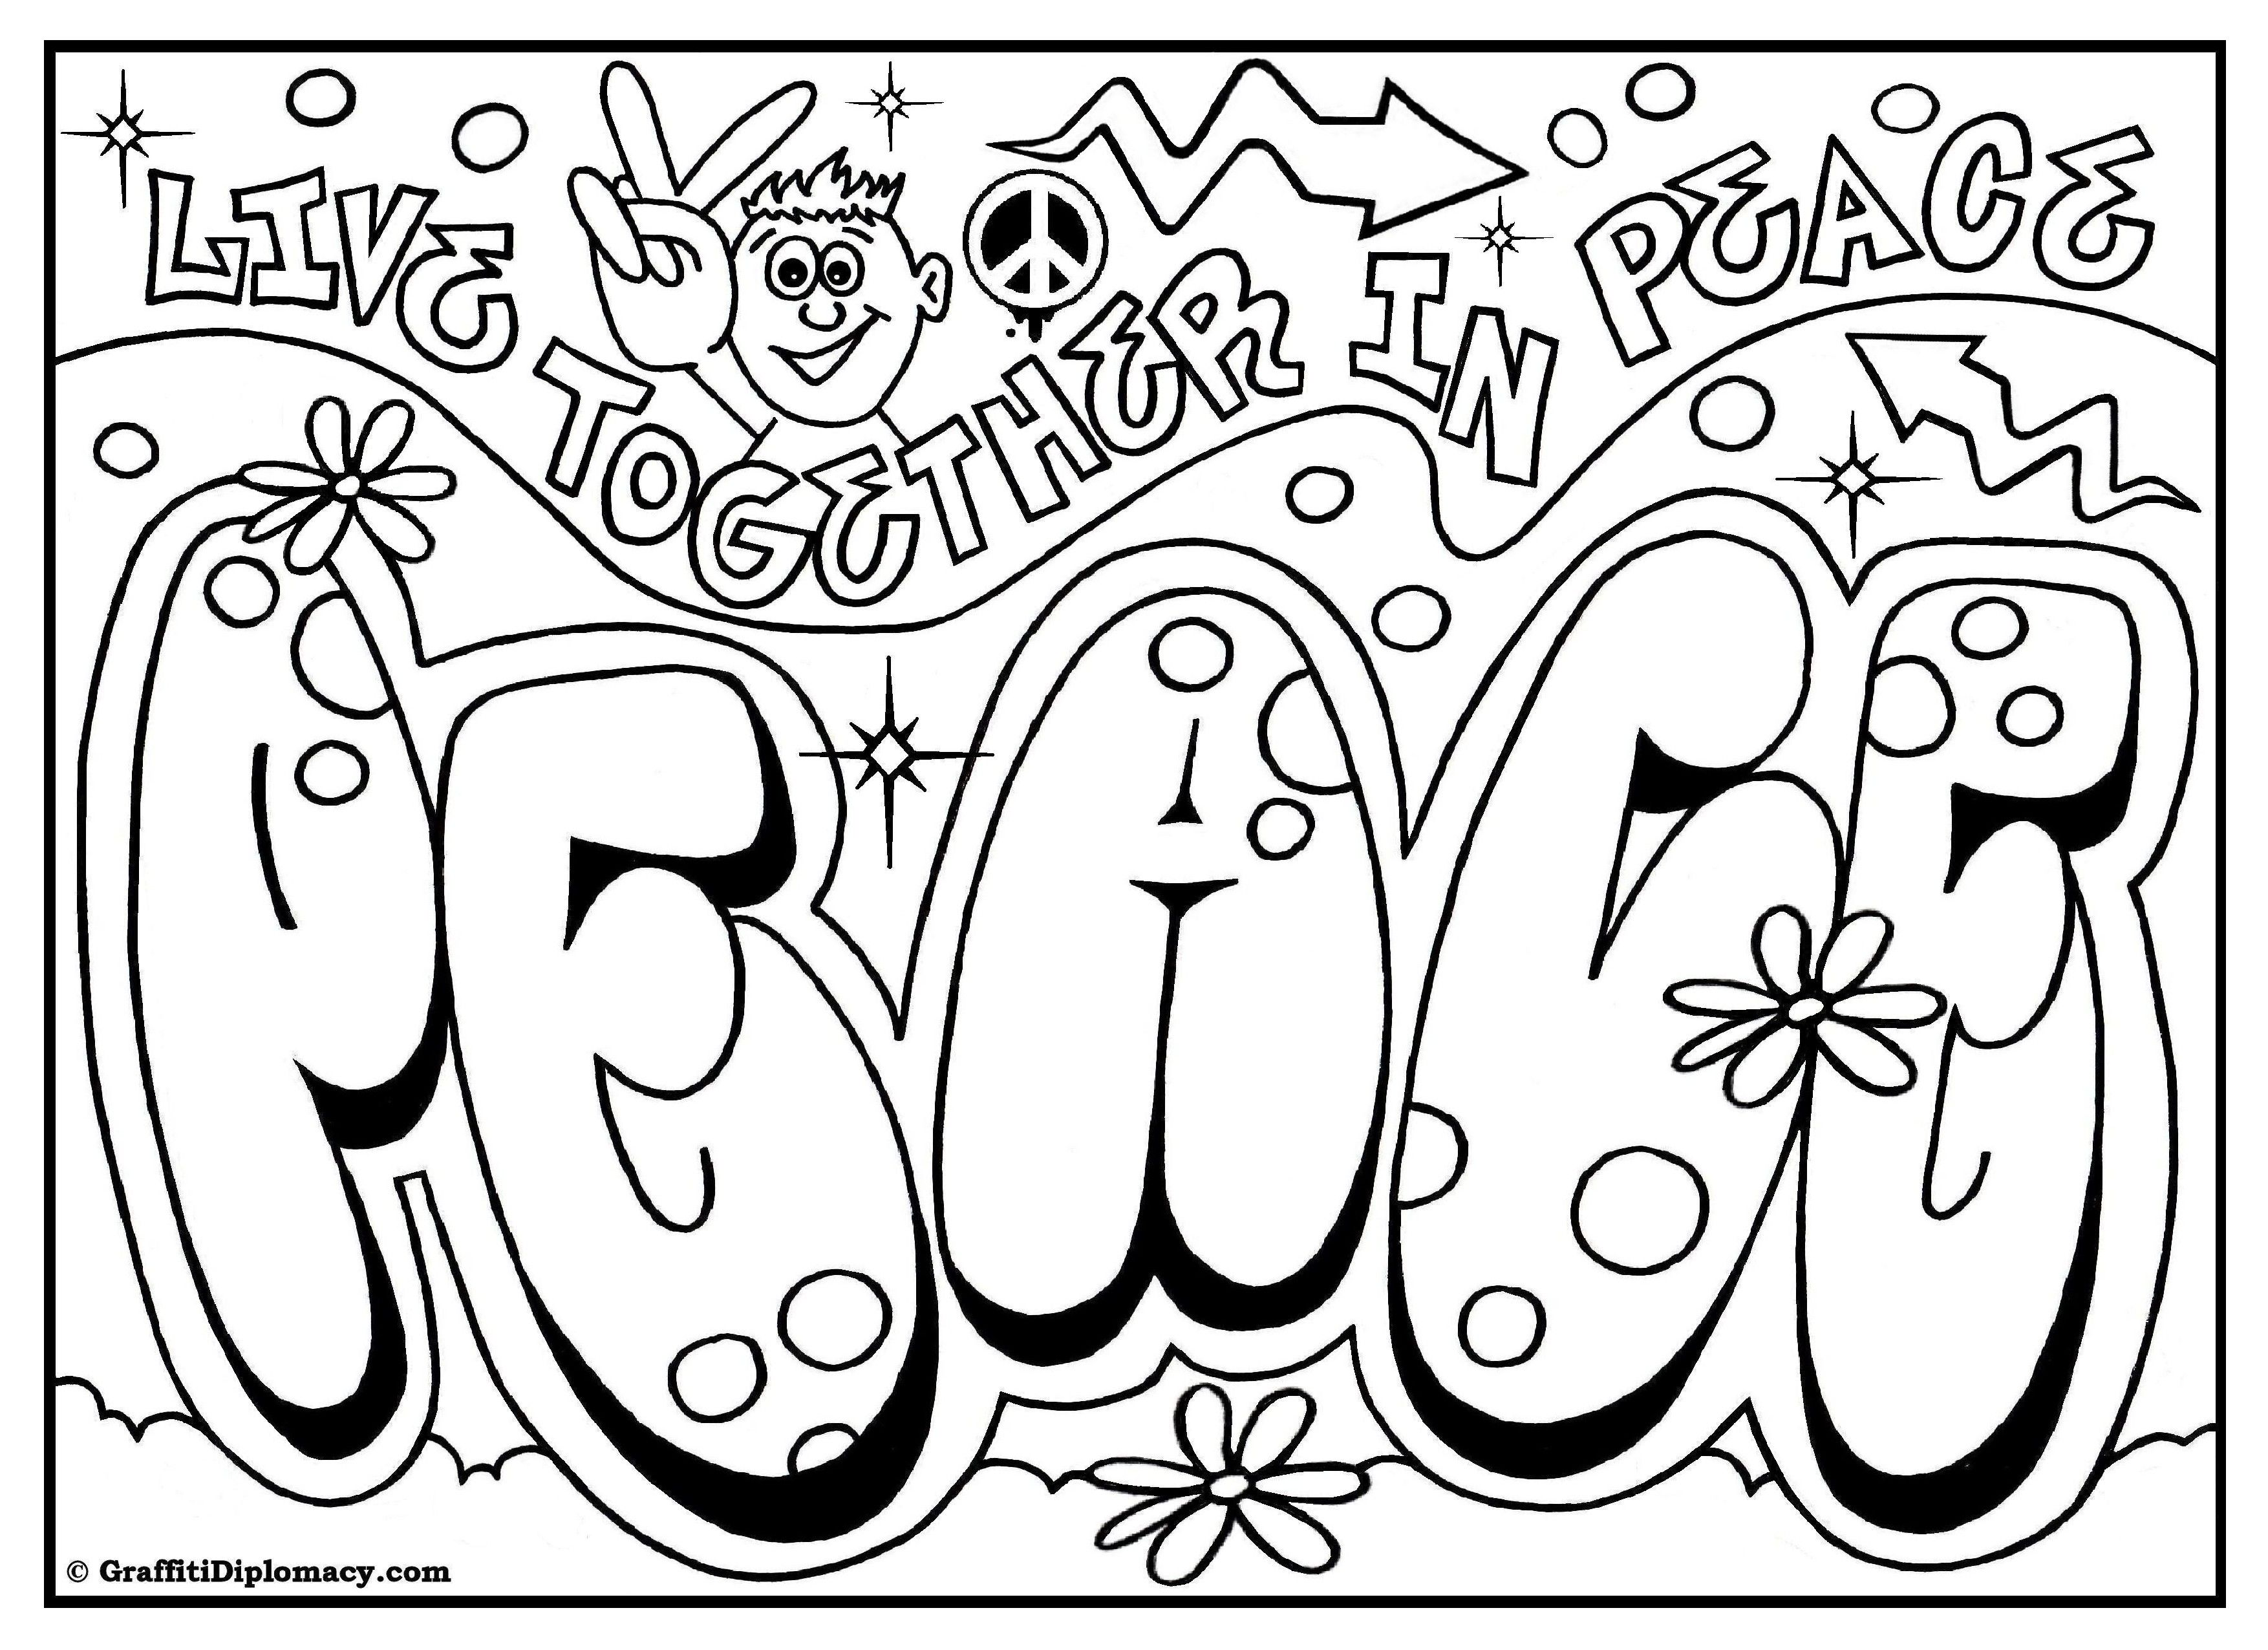 Peace Graffiti Free Printable Coloring Page Love Coloring Pages Printable Coloring Book Name Coloring Pages